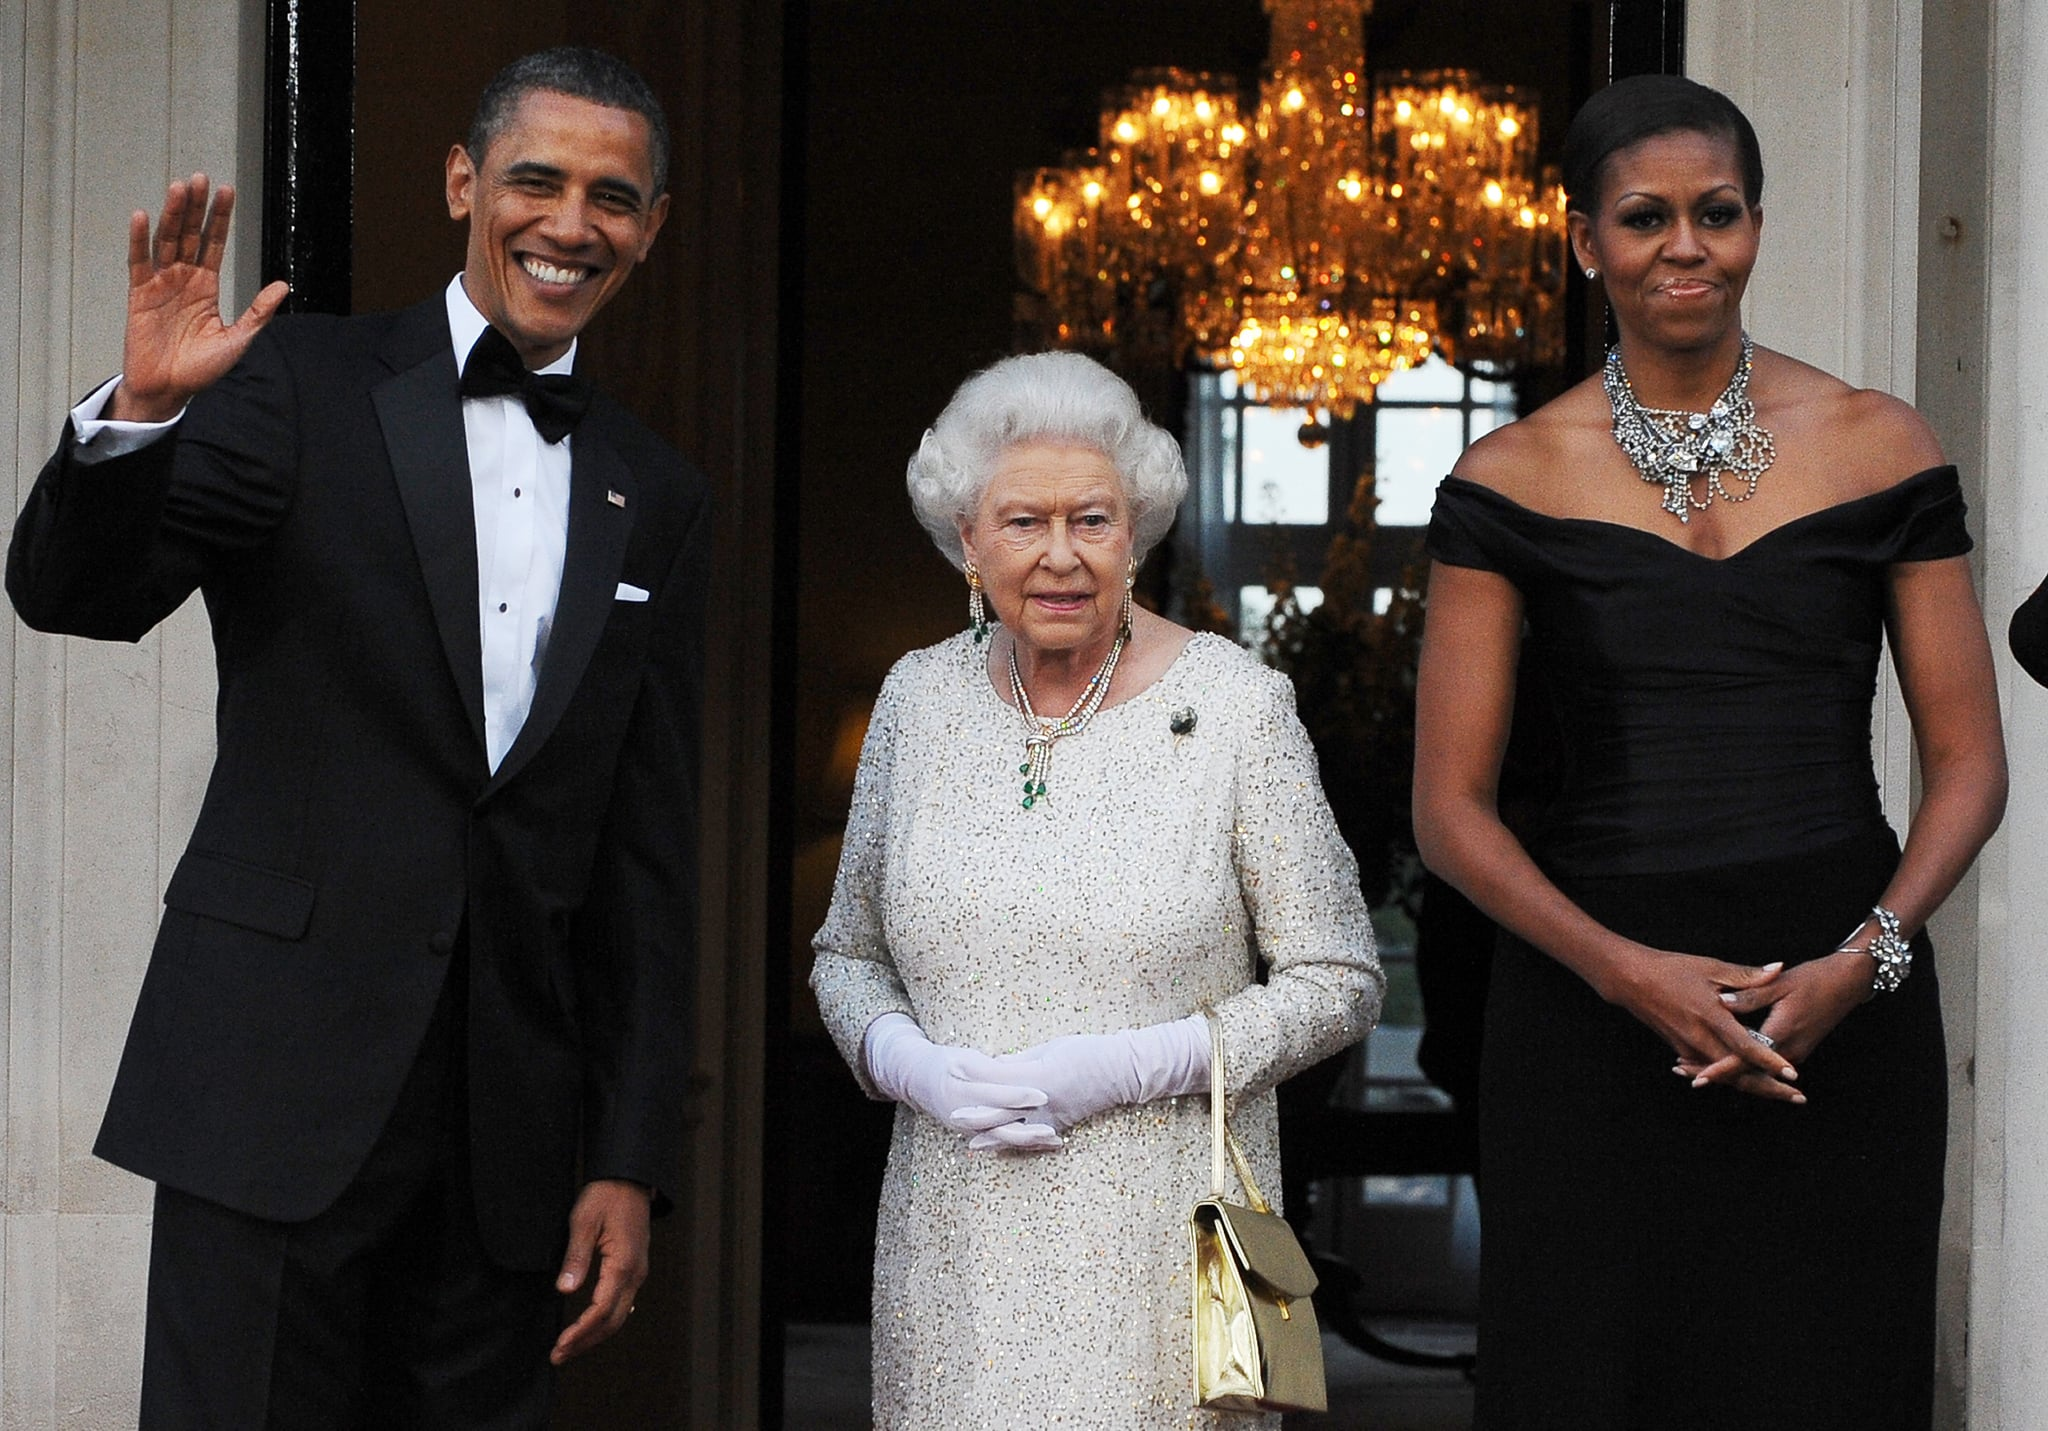 US President Barack Obama (L) and First Lady Michelle Obama (R) greet Britain's Queen Elizabeth II before a reciprocal dinner at the Winfield House in London, on May 25, 2011. Obama and his wife Michelle enjoyed a regal welcome from Queen Elizabeth II, who has met every US president but one since the 1950s. Obama's visit, the second stop on a European tour, comes as Britain seeks to prove its staying power despite fading military might and Washington looks to retool its decades-old alliance with Europe as a catalyst for global action. AFP Photo/Jewel Samad (Photo credit should read JEWEL SAMAD/AFP/Getty Images)